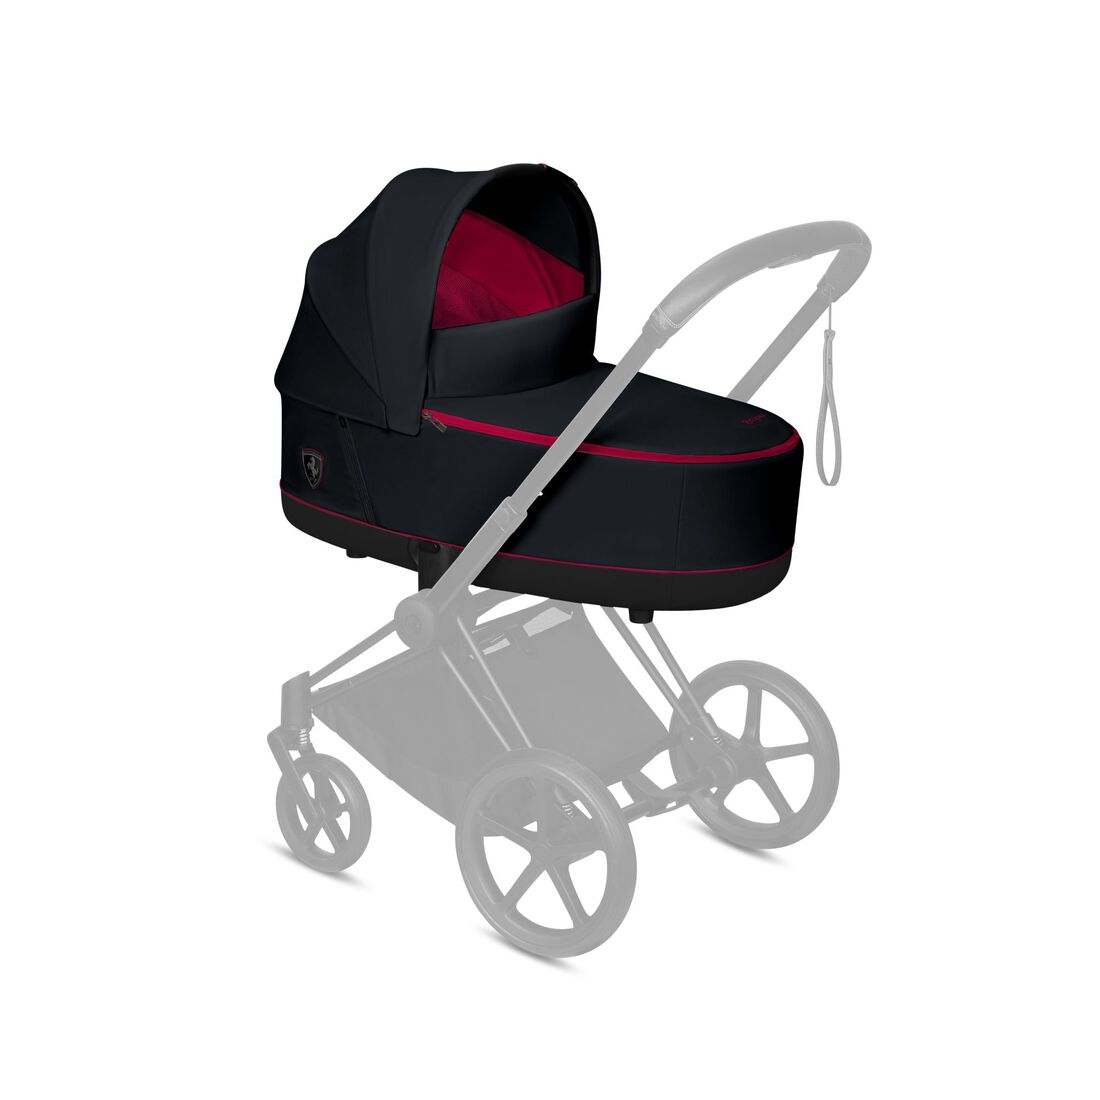 CYBEX Priam Lux Carry Cot - Ferrari Victory Black in Ferrari Victory Black large Bild 4